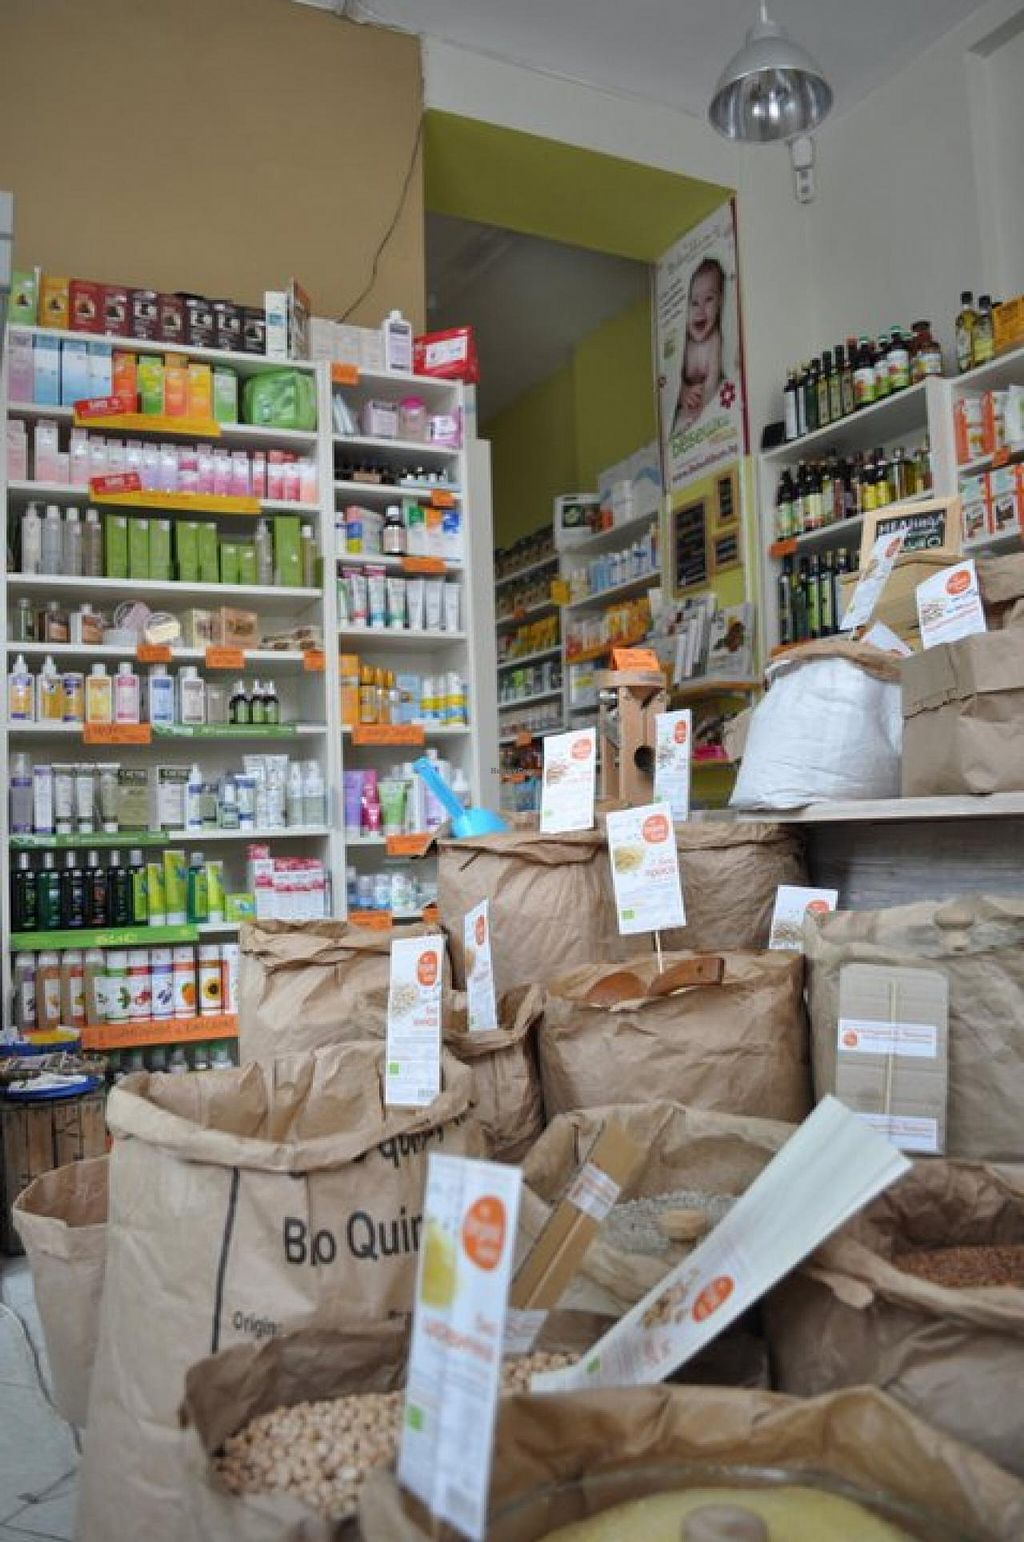 """Photo of CLOSED: Zelen Bio  by <a href=""""/members/profile/AnitaKlasanova"""">AnitaKlasanova</a> <br/>We from My Organic market offer a variety of more than 50 bulk grains, seeds, dried fruits, raw nuts and Superfoods. Himalayan and celtic salt. All organic certified goods <br/> January 23, 2014  - <a href='/contact/abuse/image/11131/62998'>Report</a>"""